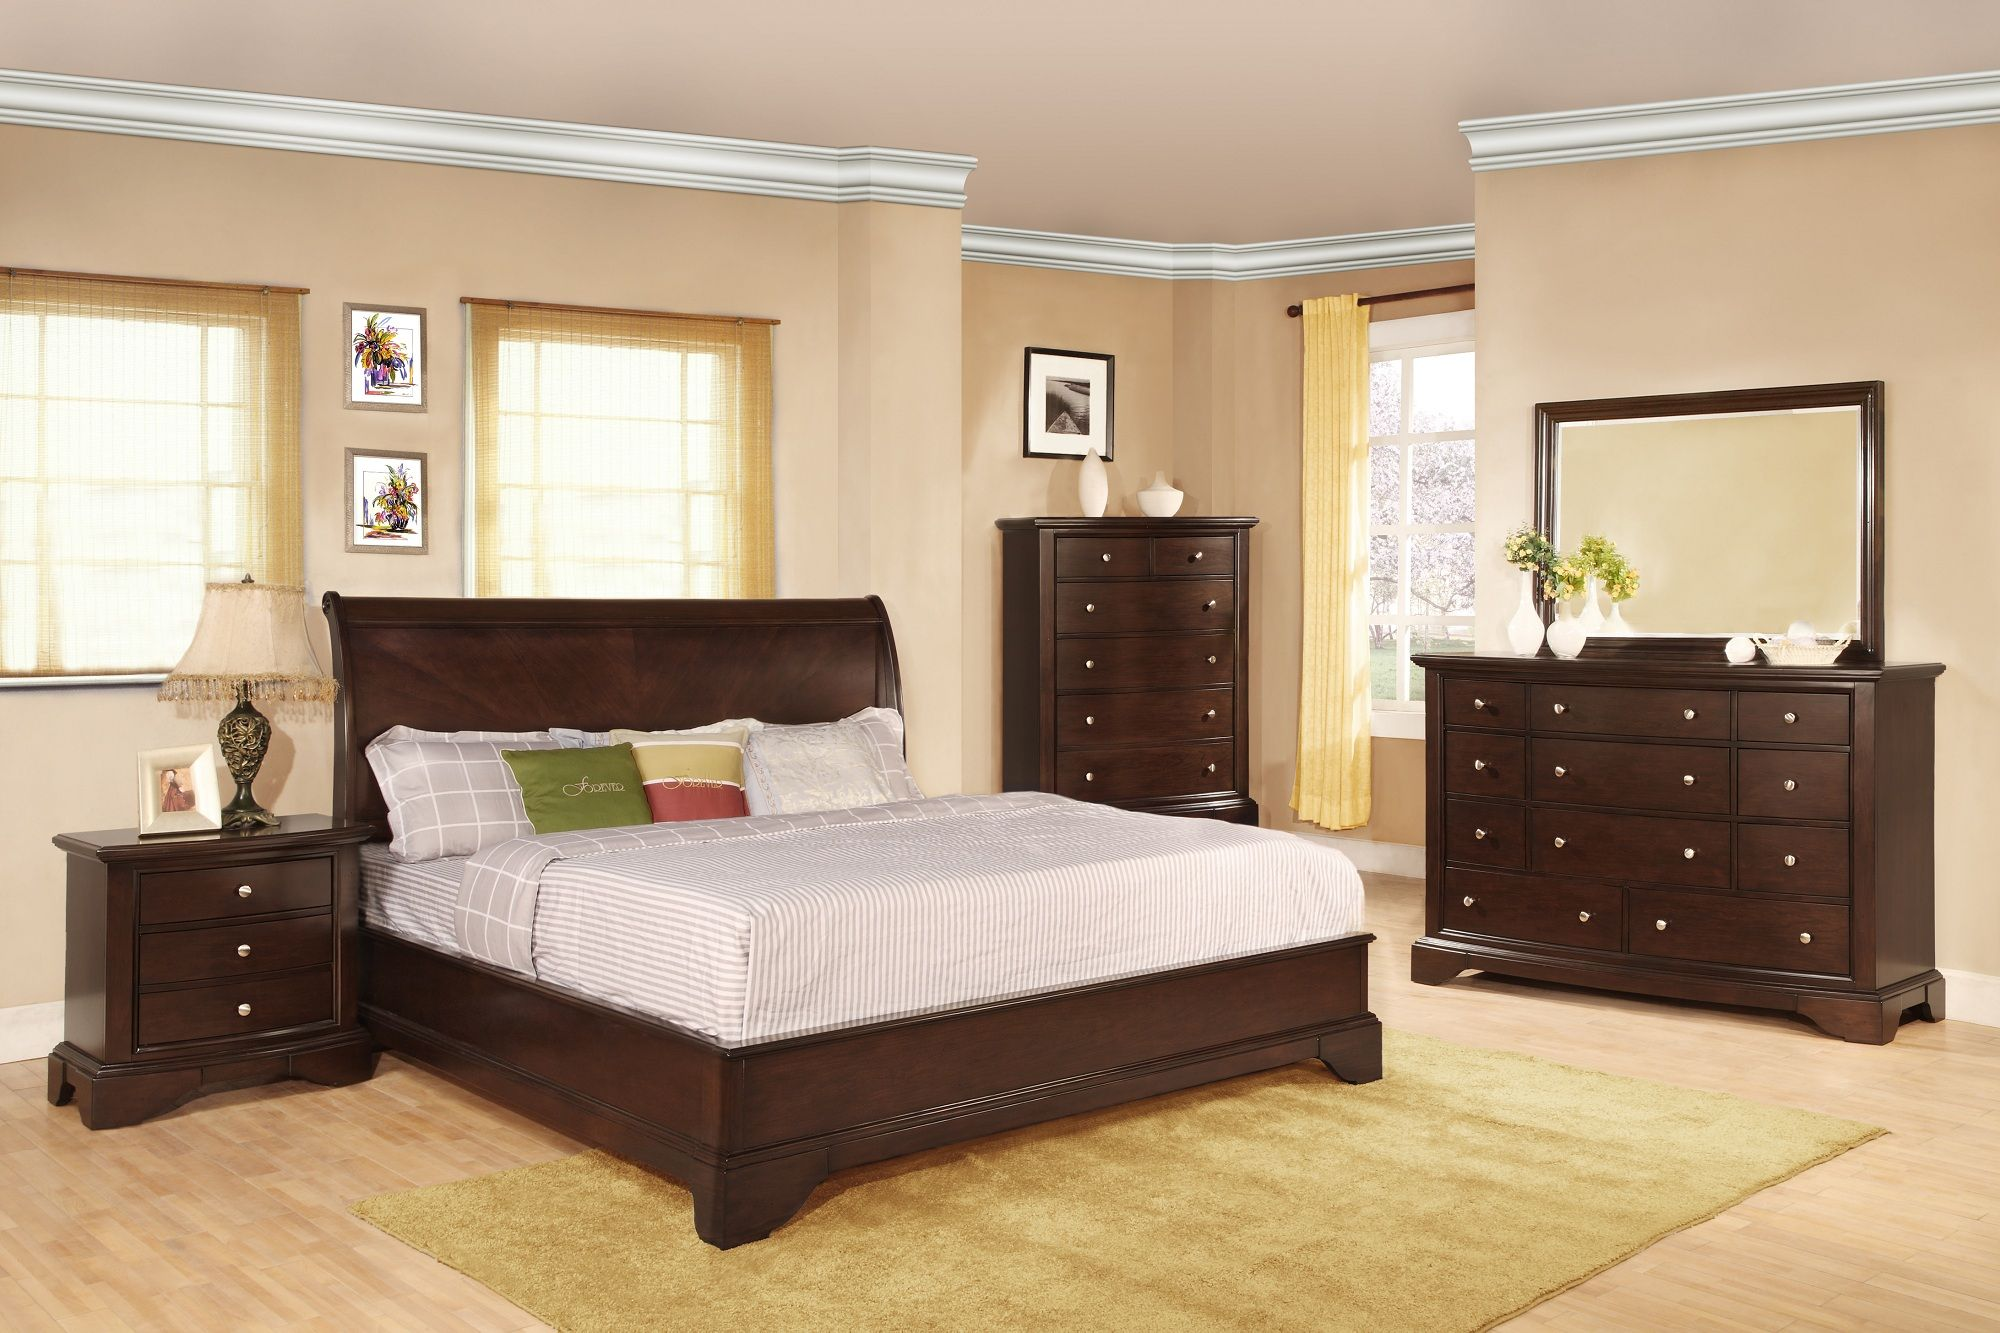 Bedroom Furniture Decor Bedroom Attractive Master Bedroom Furniture Decor Ideas Bedroom In 2020 Cheap Bedroom Furniture Rustic Bedroom Furniture Sets Cheap Bedroom Sets